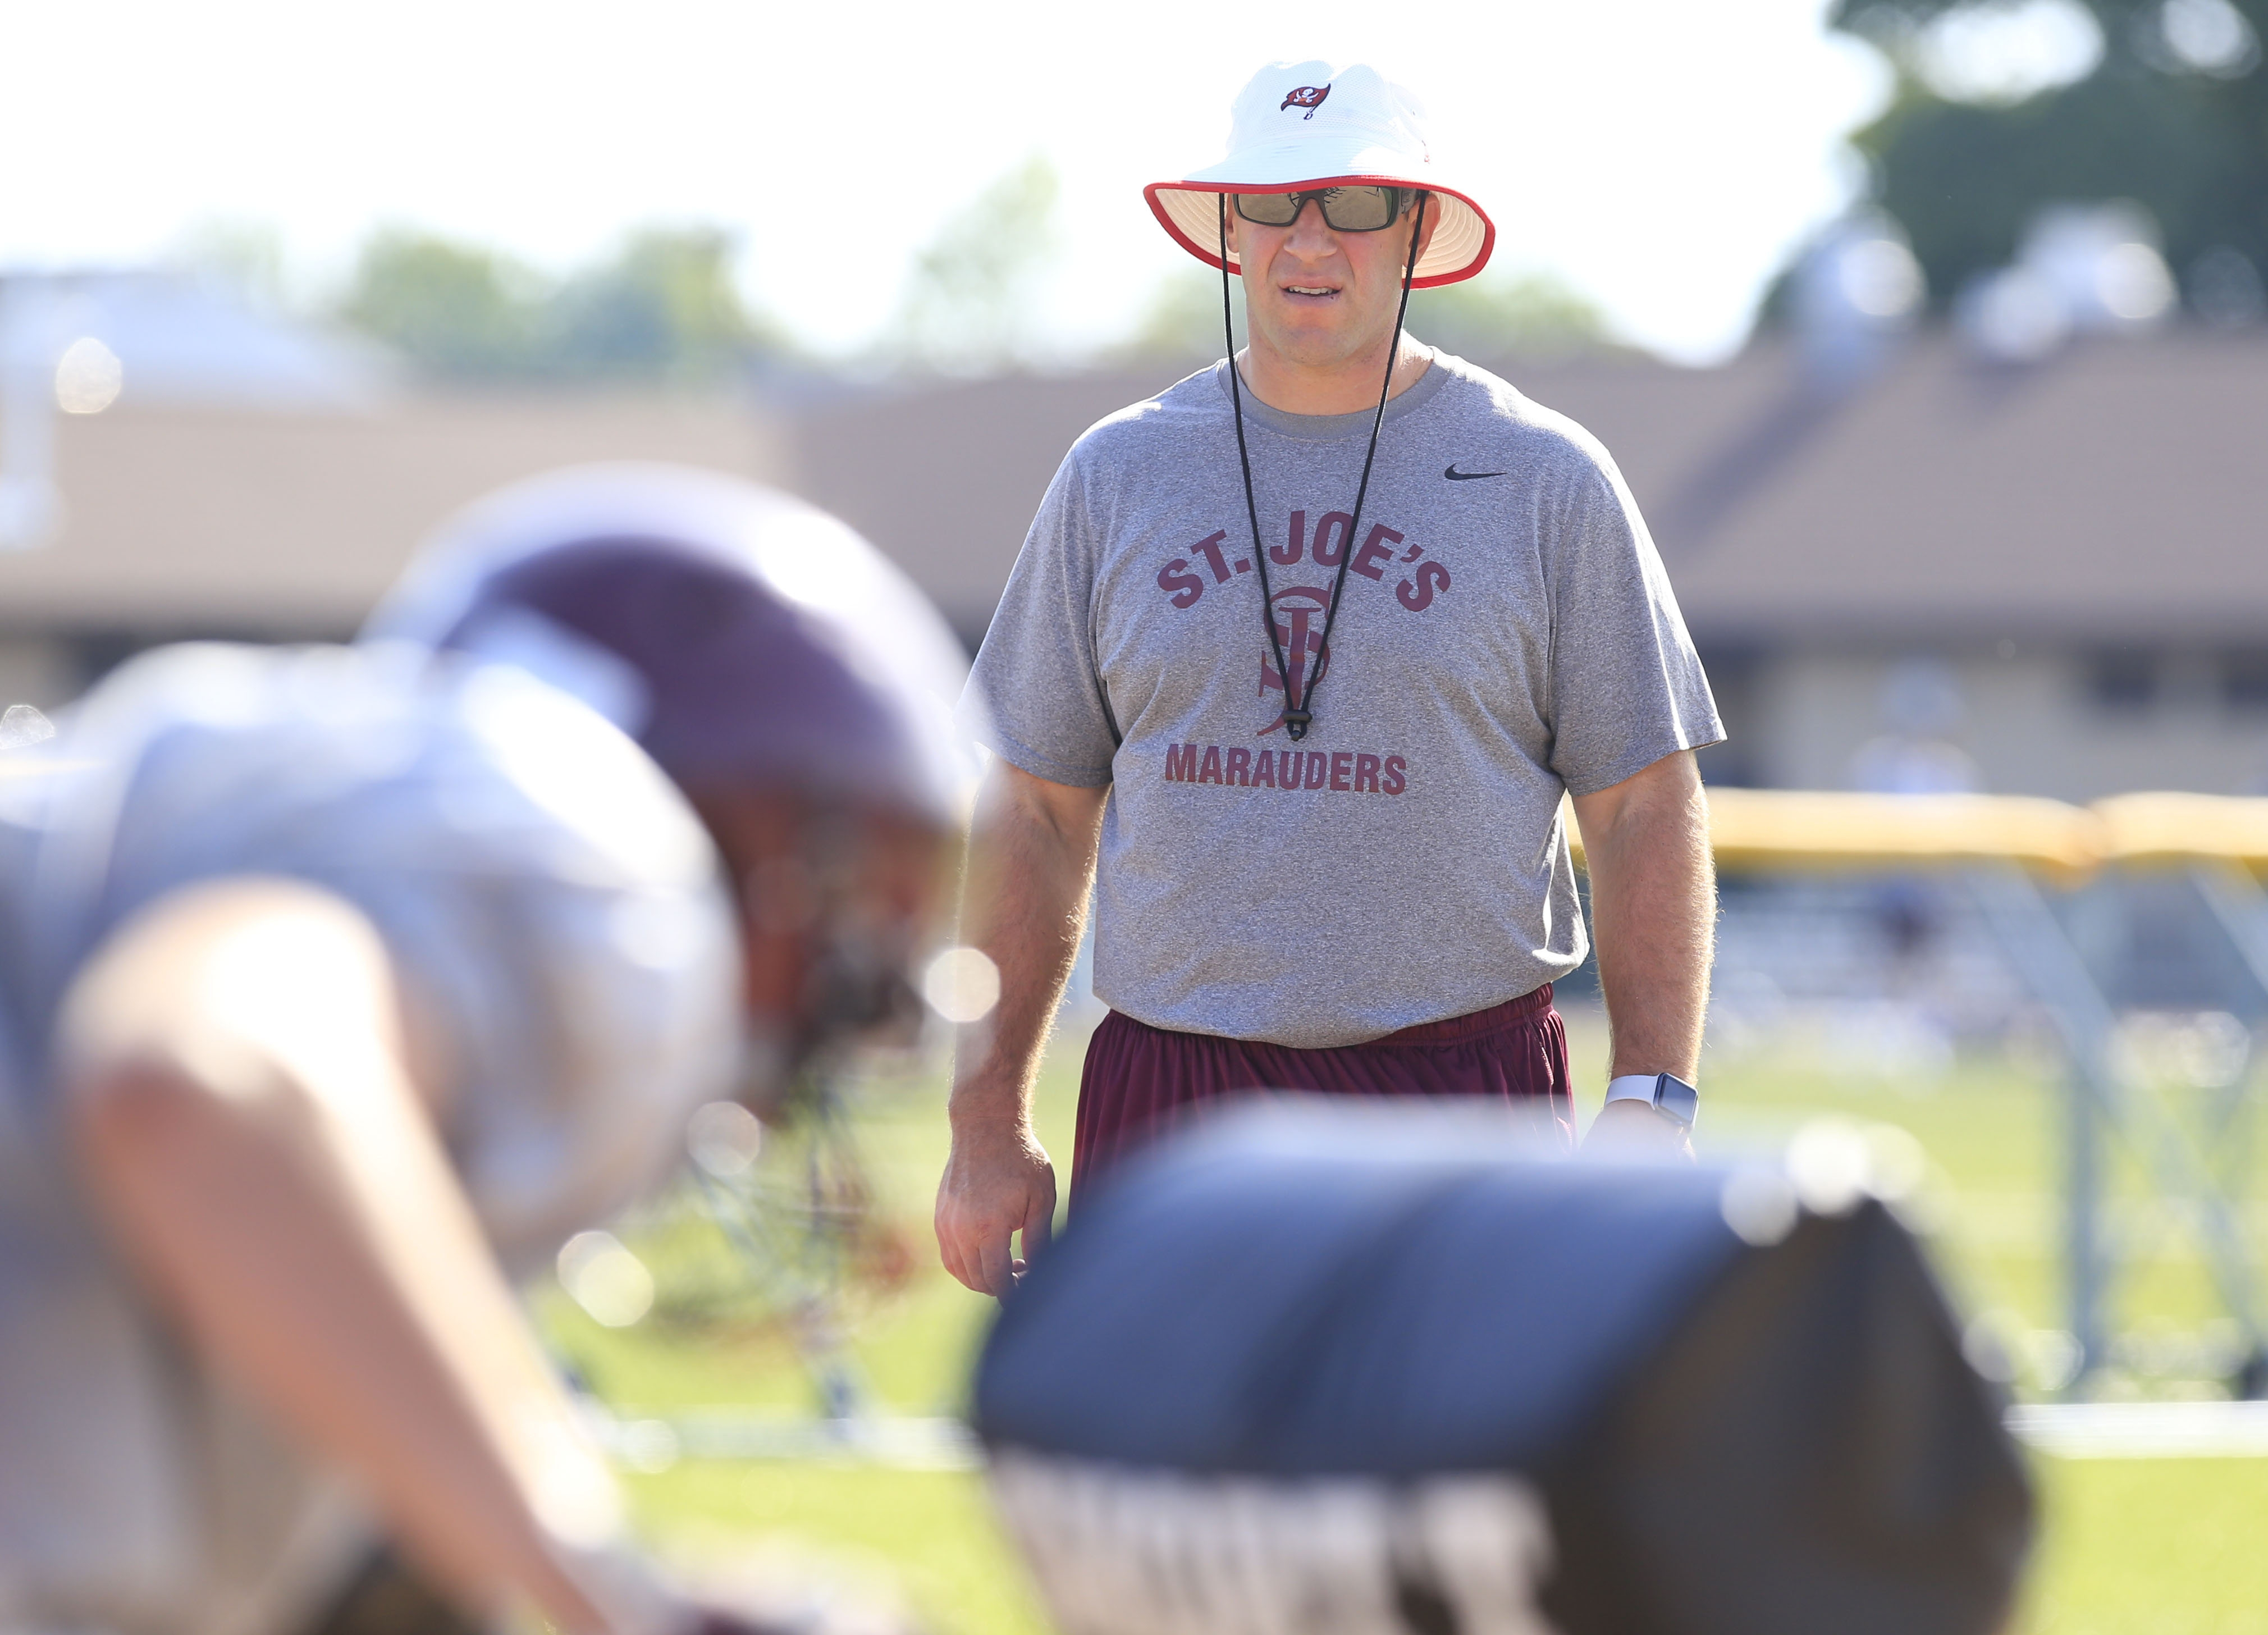 New St. Joe's head coach Derek Landri would like nothing better than to begin his time on the job with a win over South Park on Friday night.